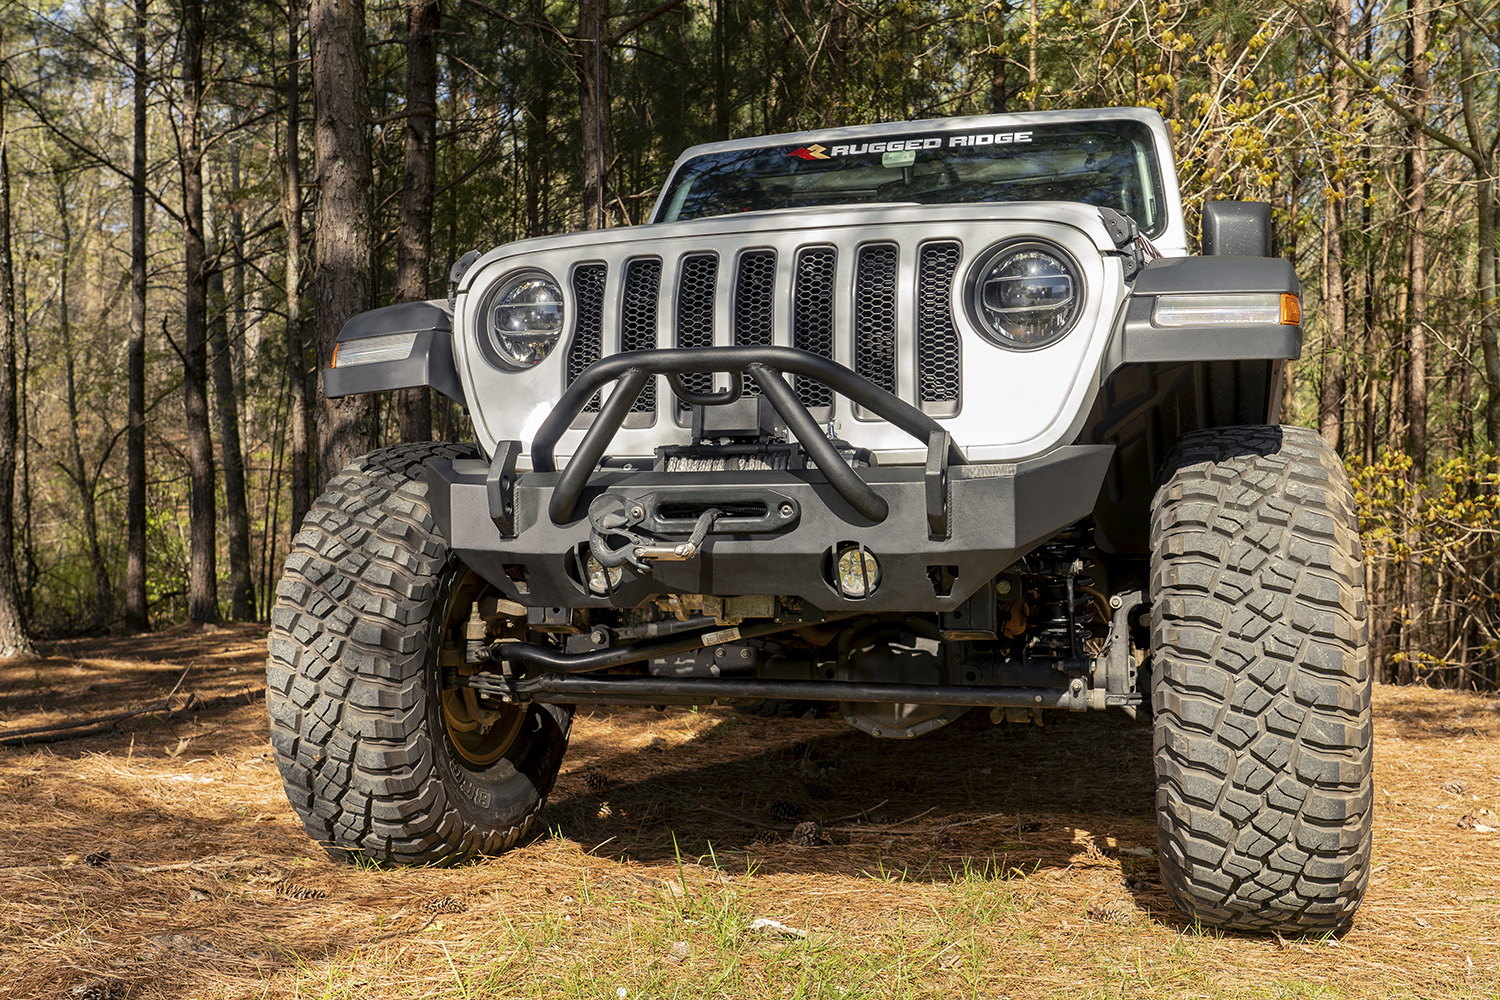 HD Bumper Stubby Front 07-18 Wrangler JK 18-19 Wrangler JL 2020 Gladiator JT Get two FREE Round LED lights (15209.01) with new HD Bumper for JL